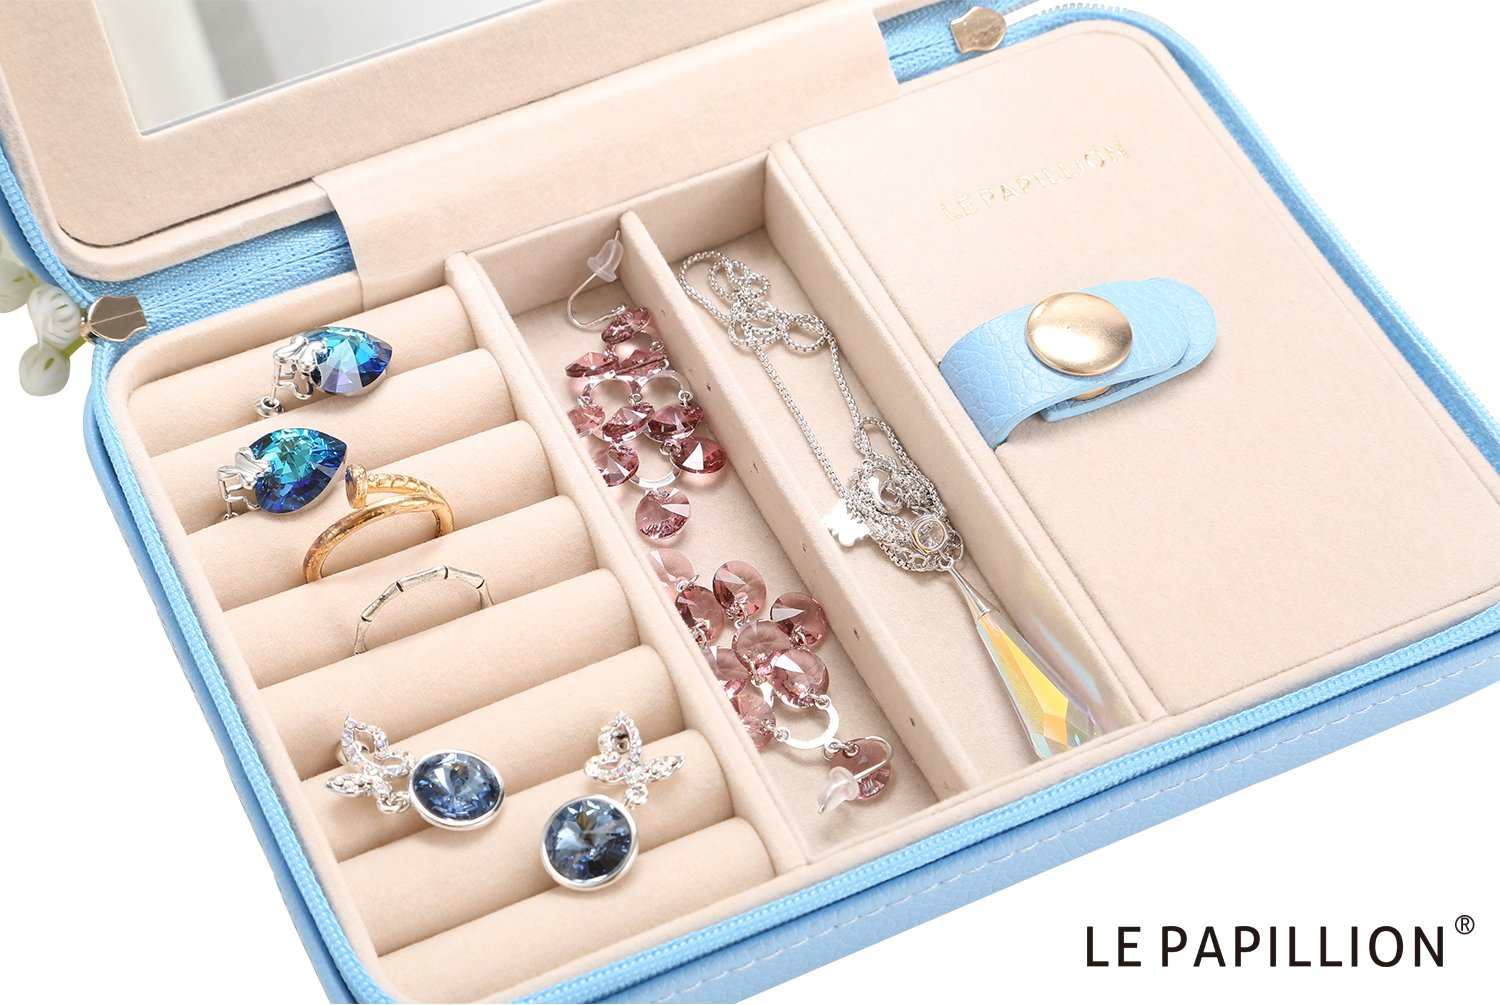 LE Papillion Small Jewelry Box Travel Jewelry Box Jewelry Travel Case Jewelry Organizer with Large Mirror, Gifts for Women, Great Gift Idea(Blue) by LE PAPILLION JEWELRY (Image #4)